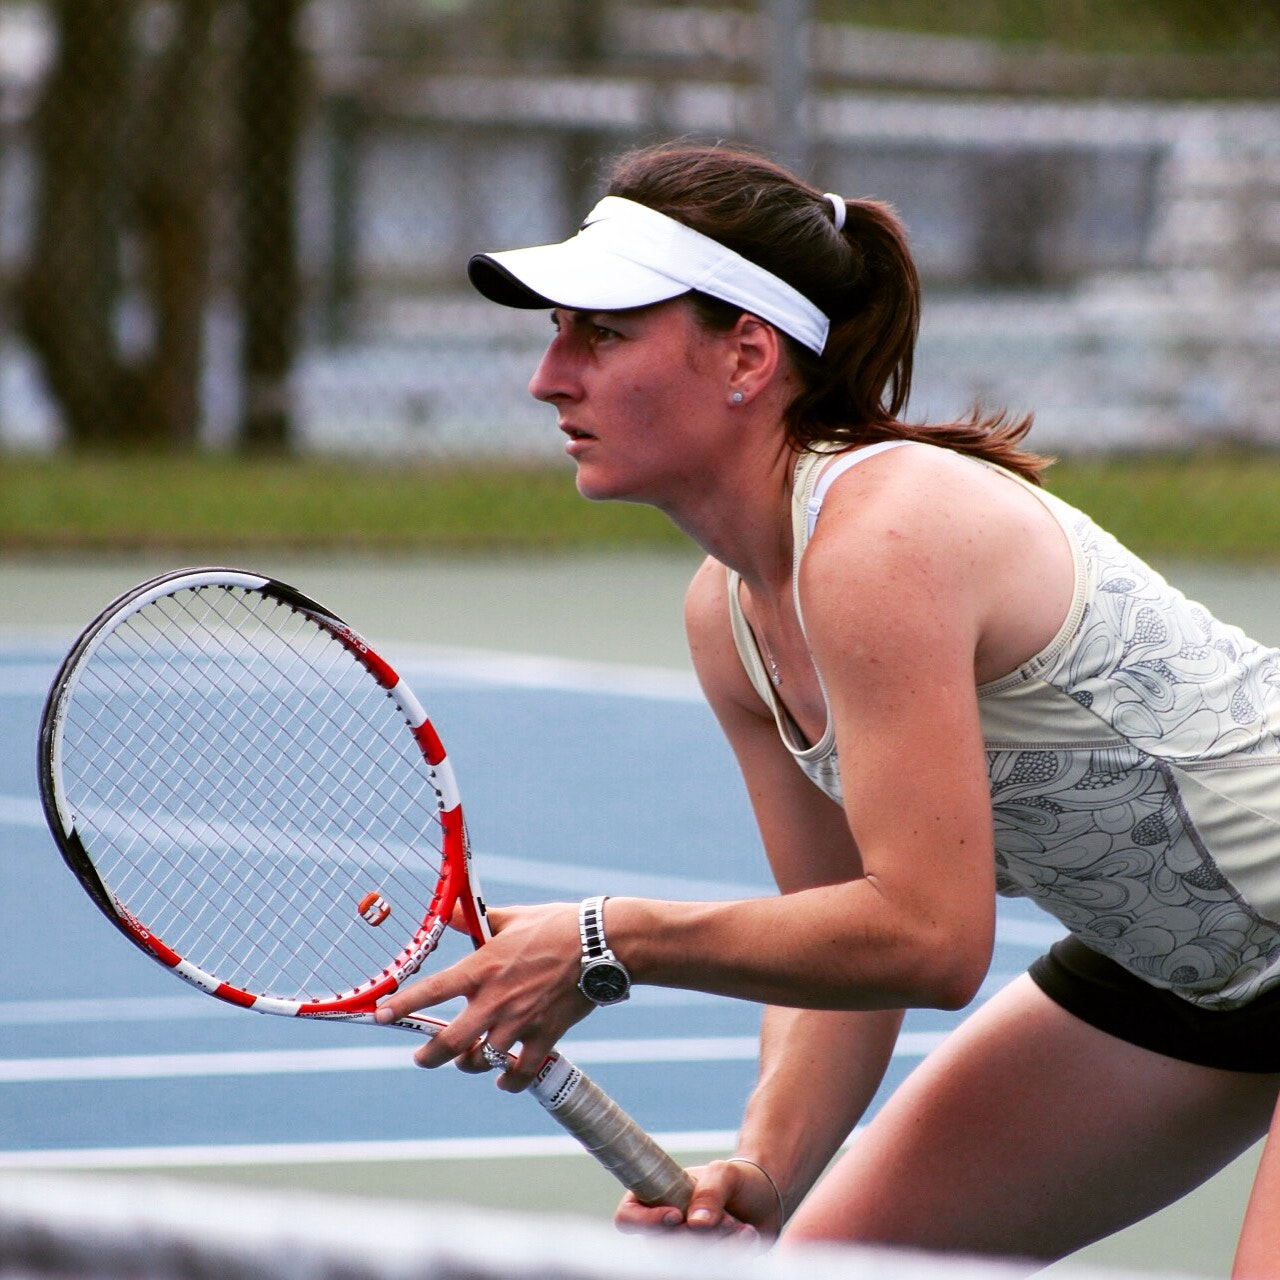 Delia S. teaches tennis lessons in Conshohocken , PA